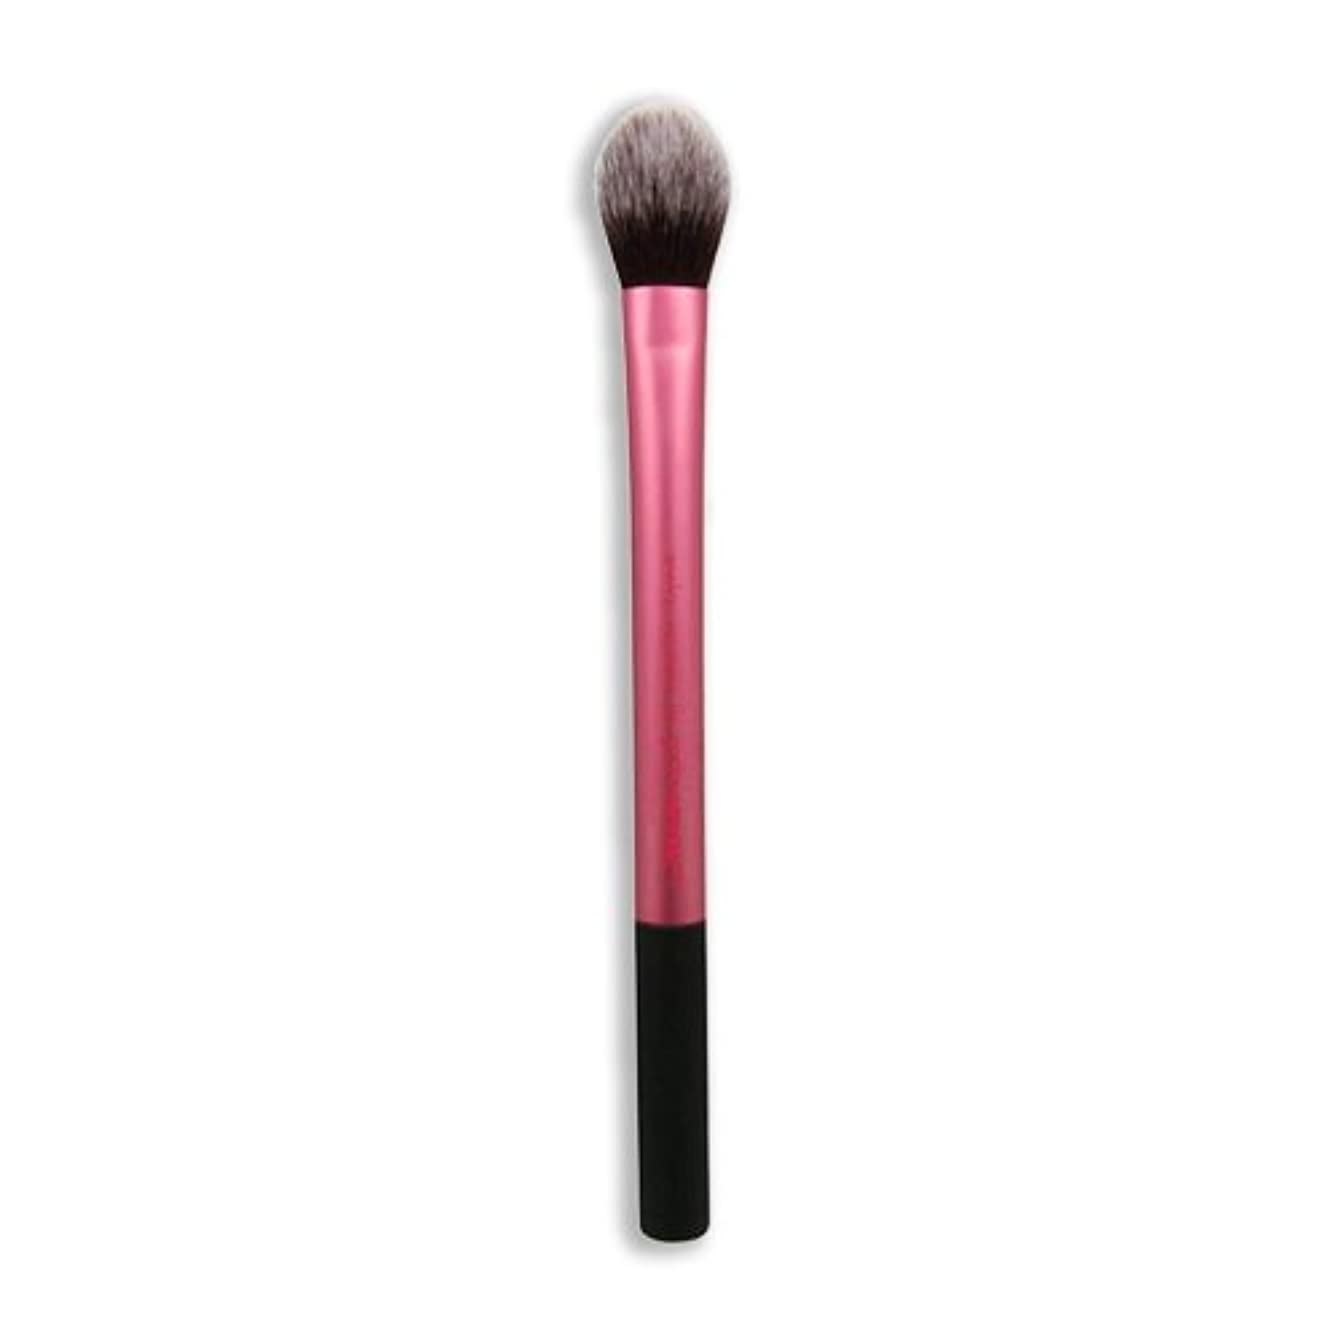 休日マルクス主義浴(3 Pack) Real Techniques Setting Brush - Setting Brush (並行輸入品)